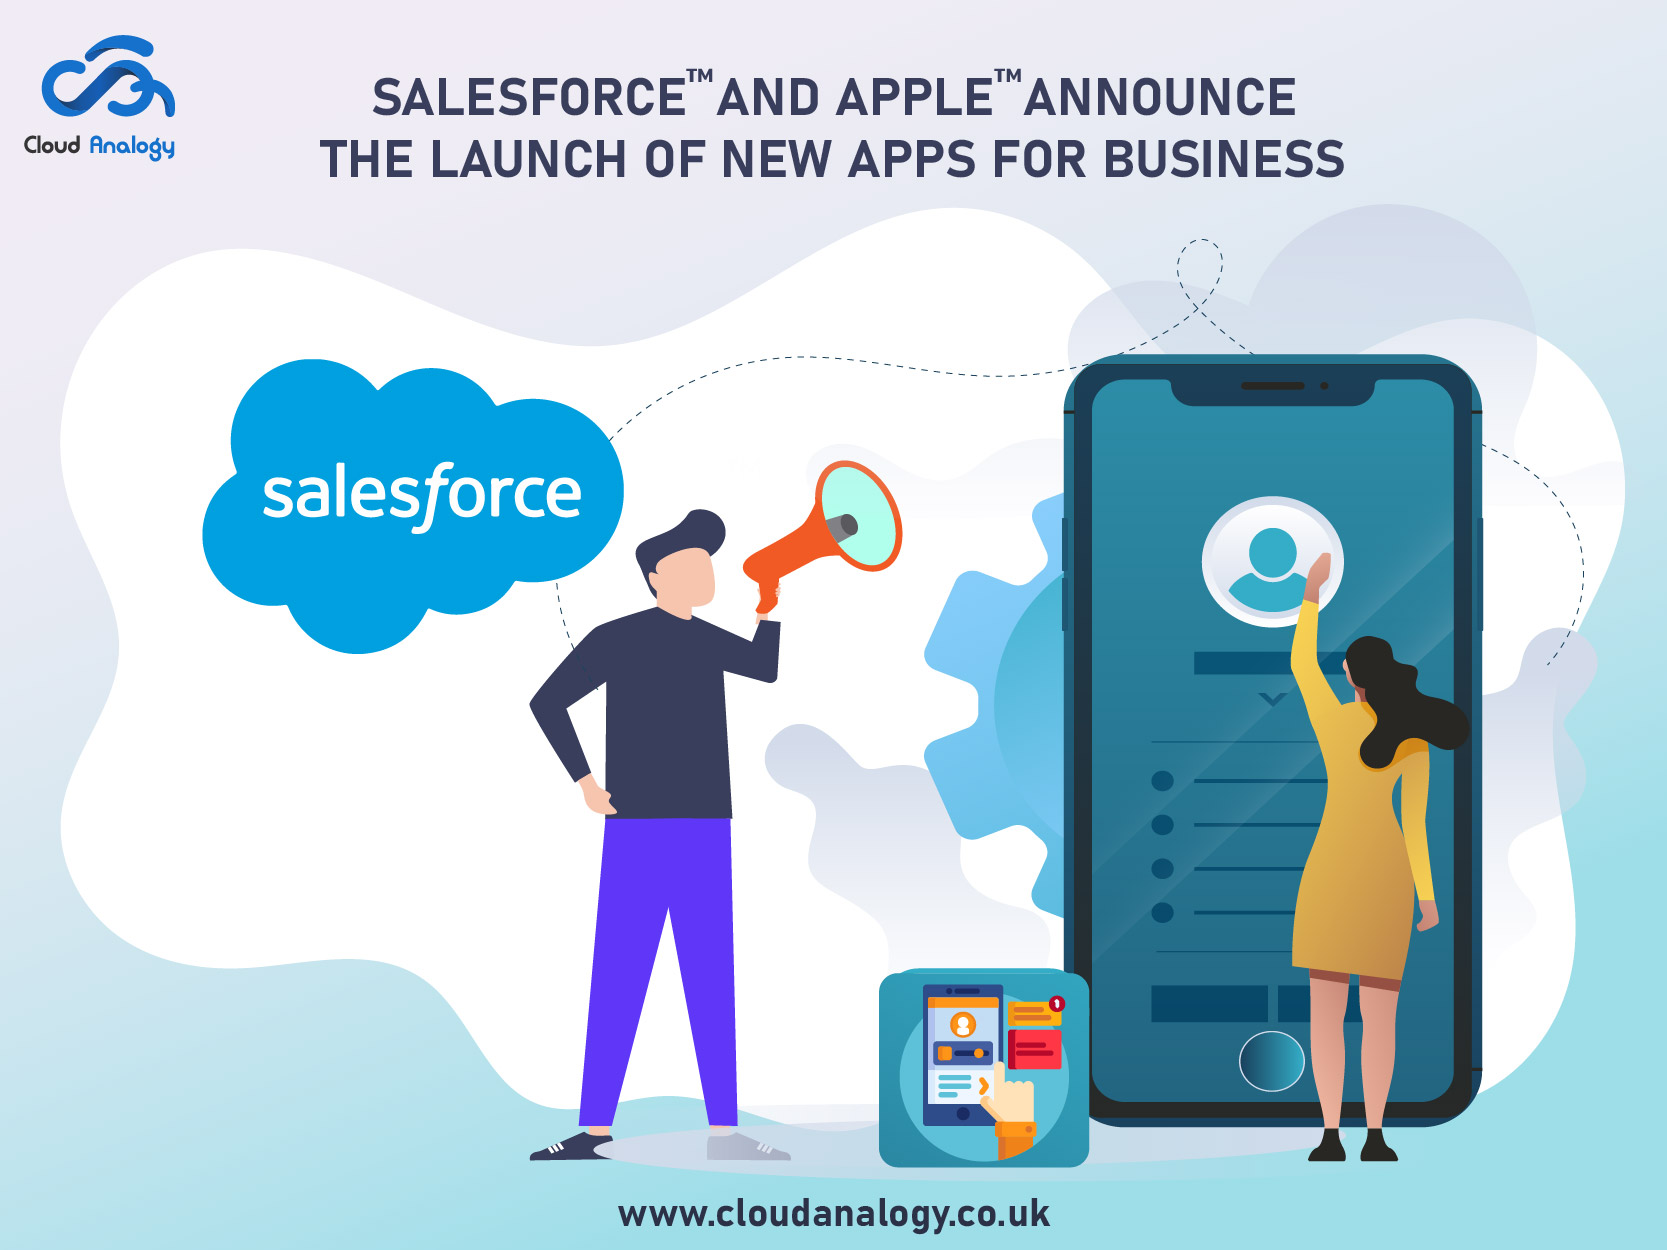 Salesforce and Apple announce the launch of new apps for business